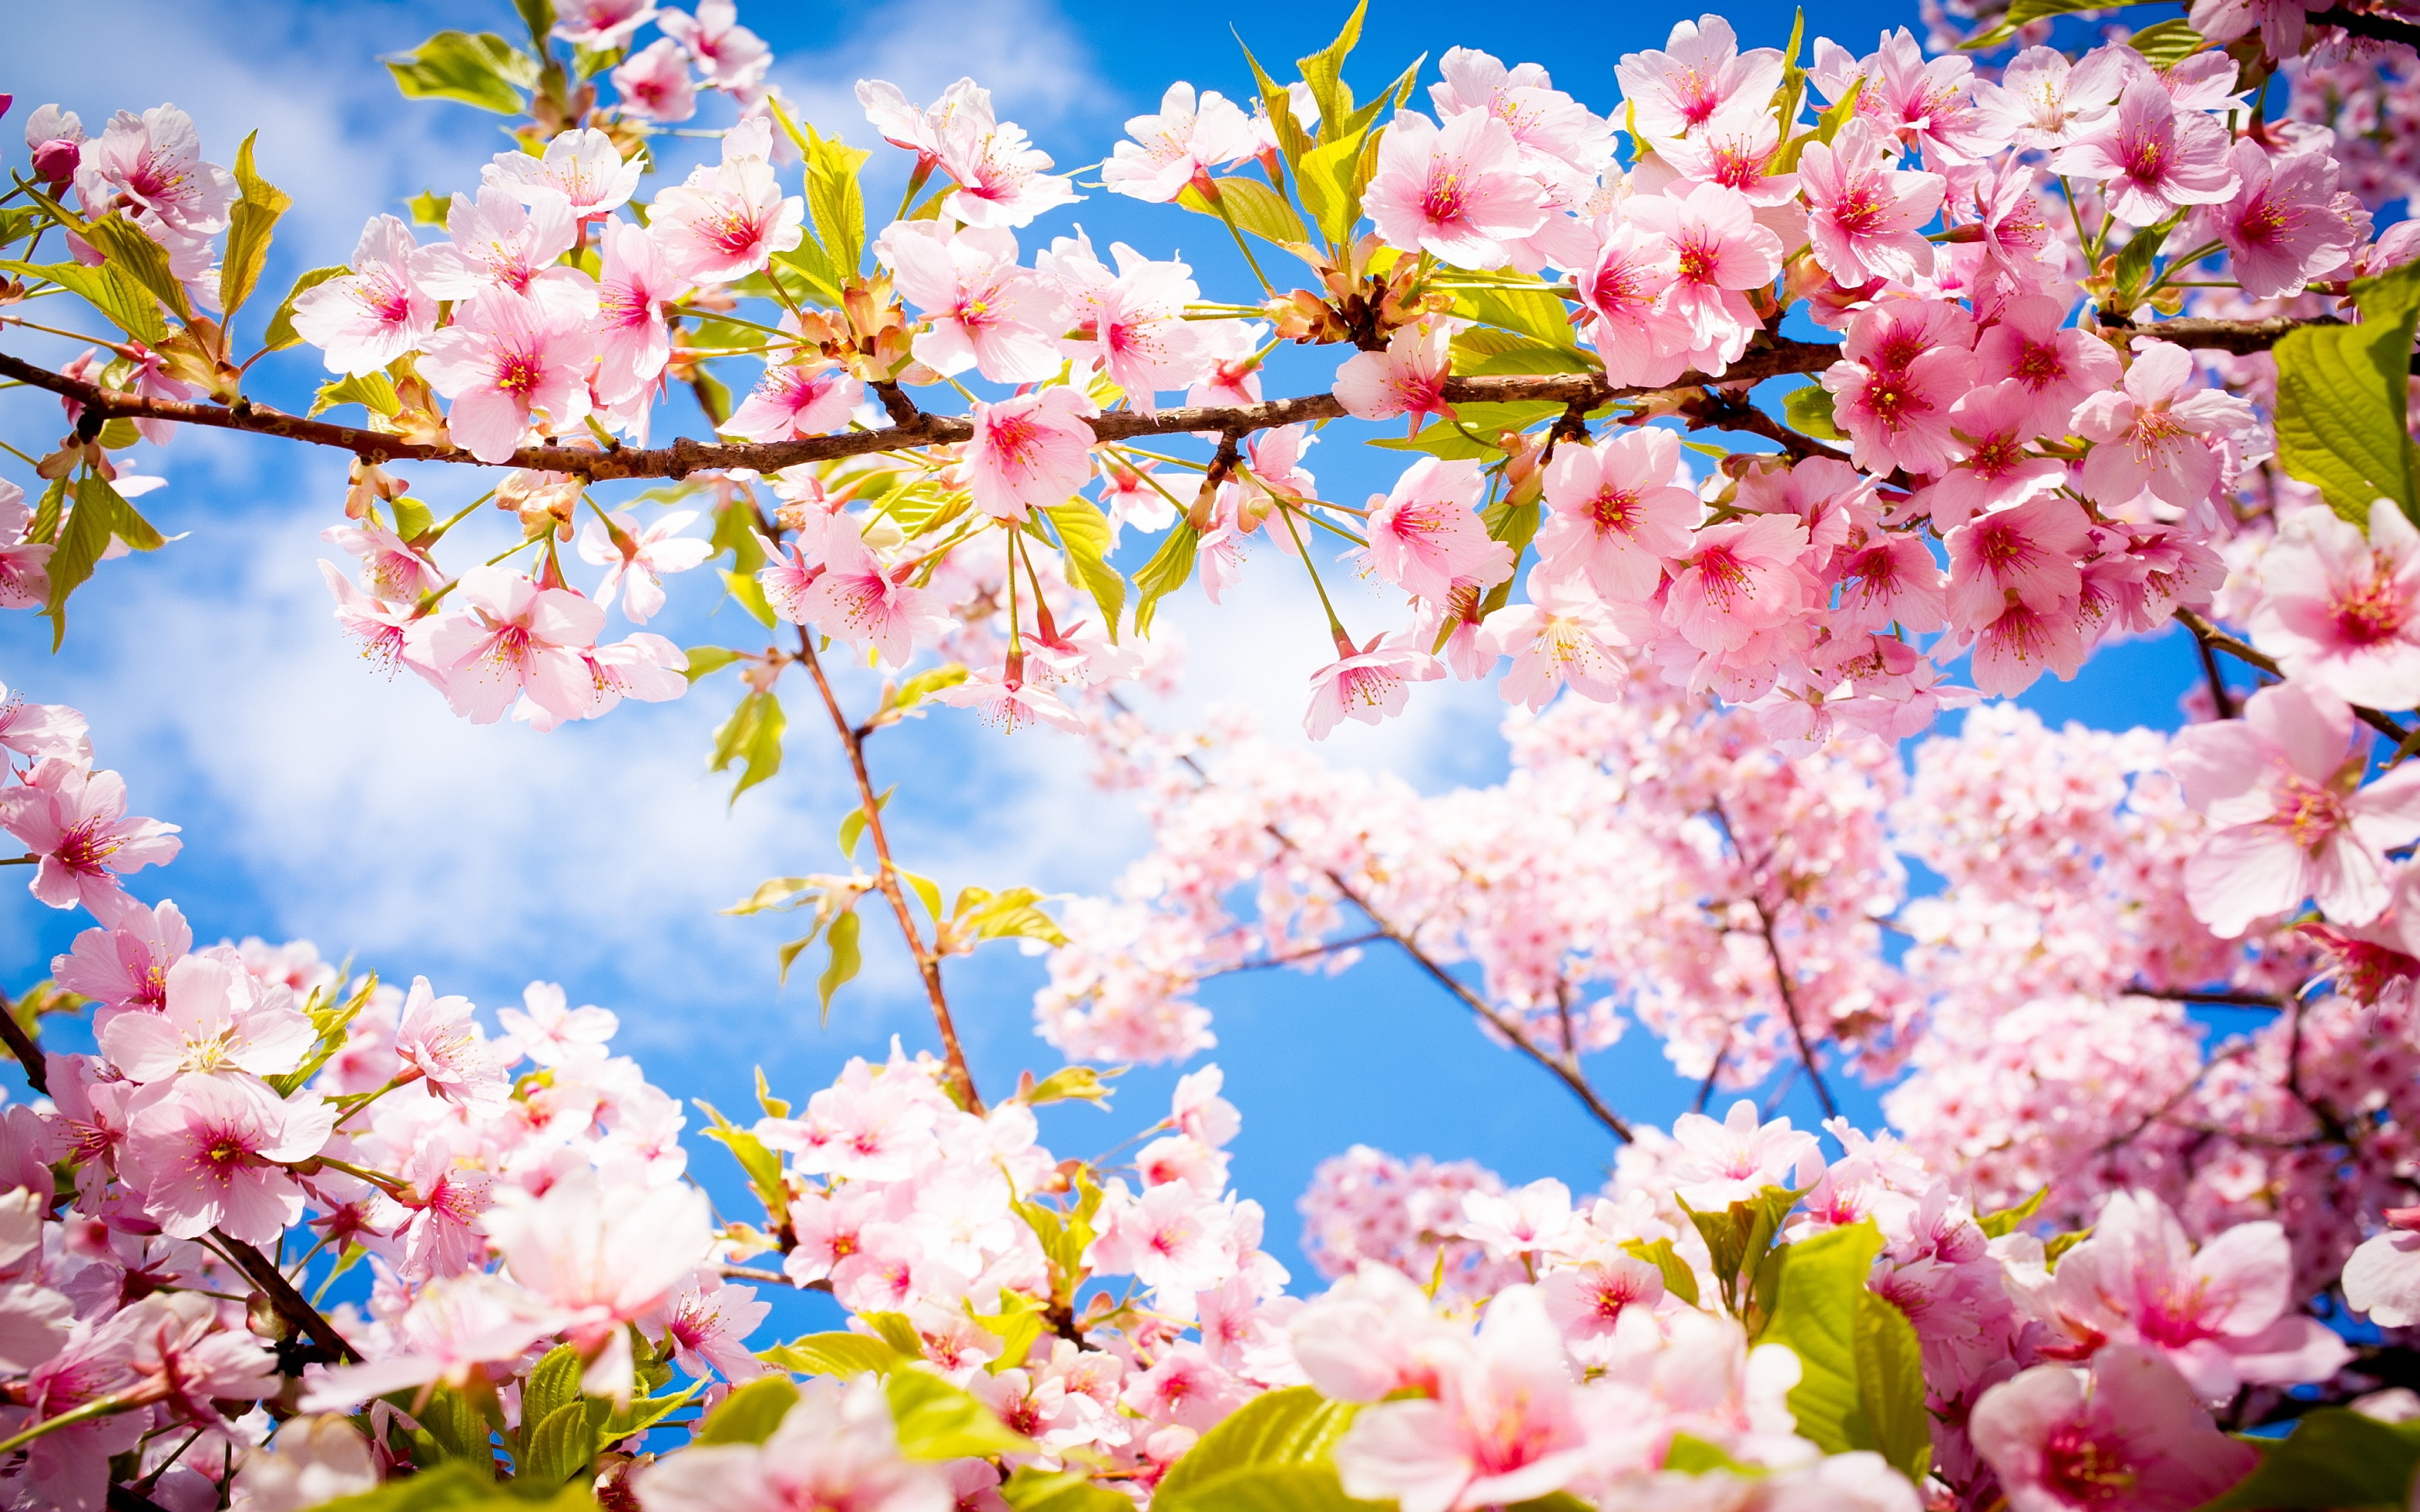 spring season hd wallpaper